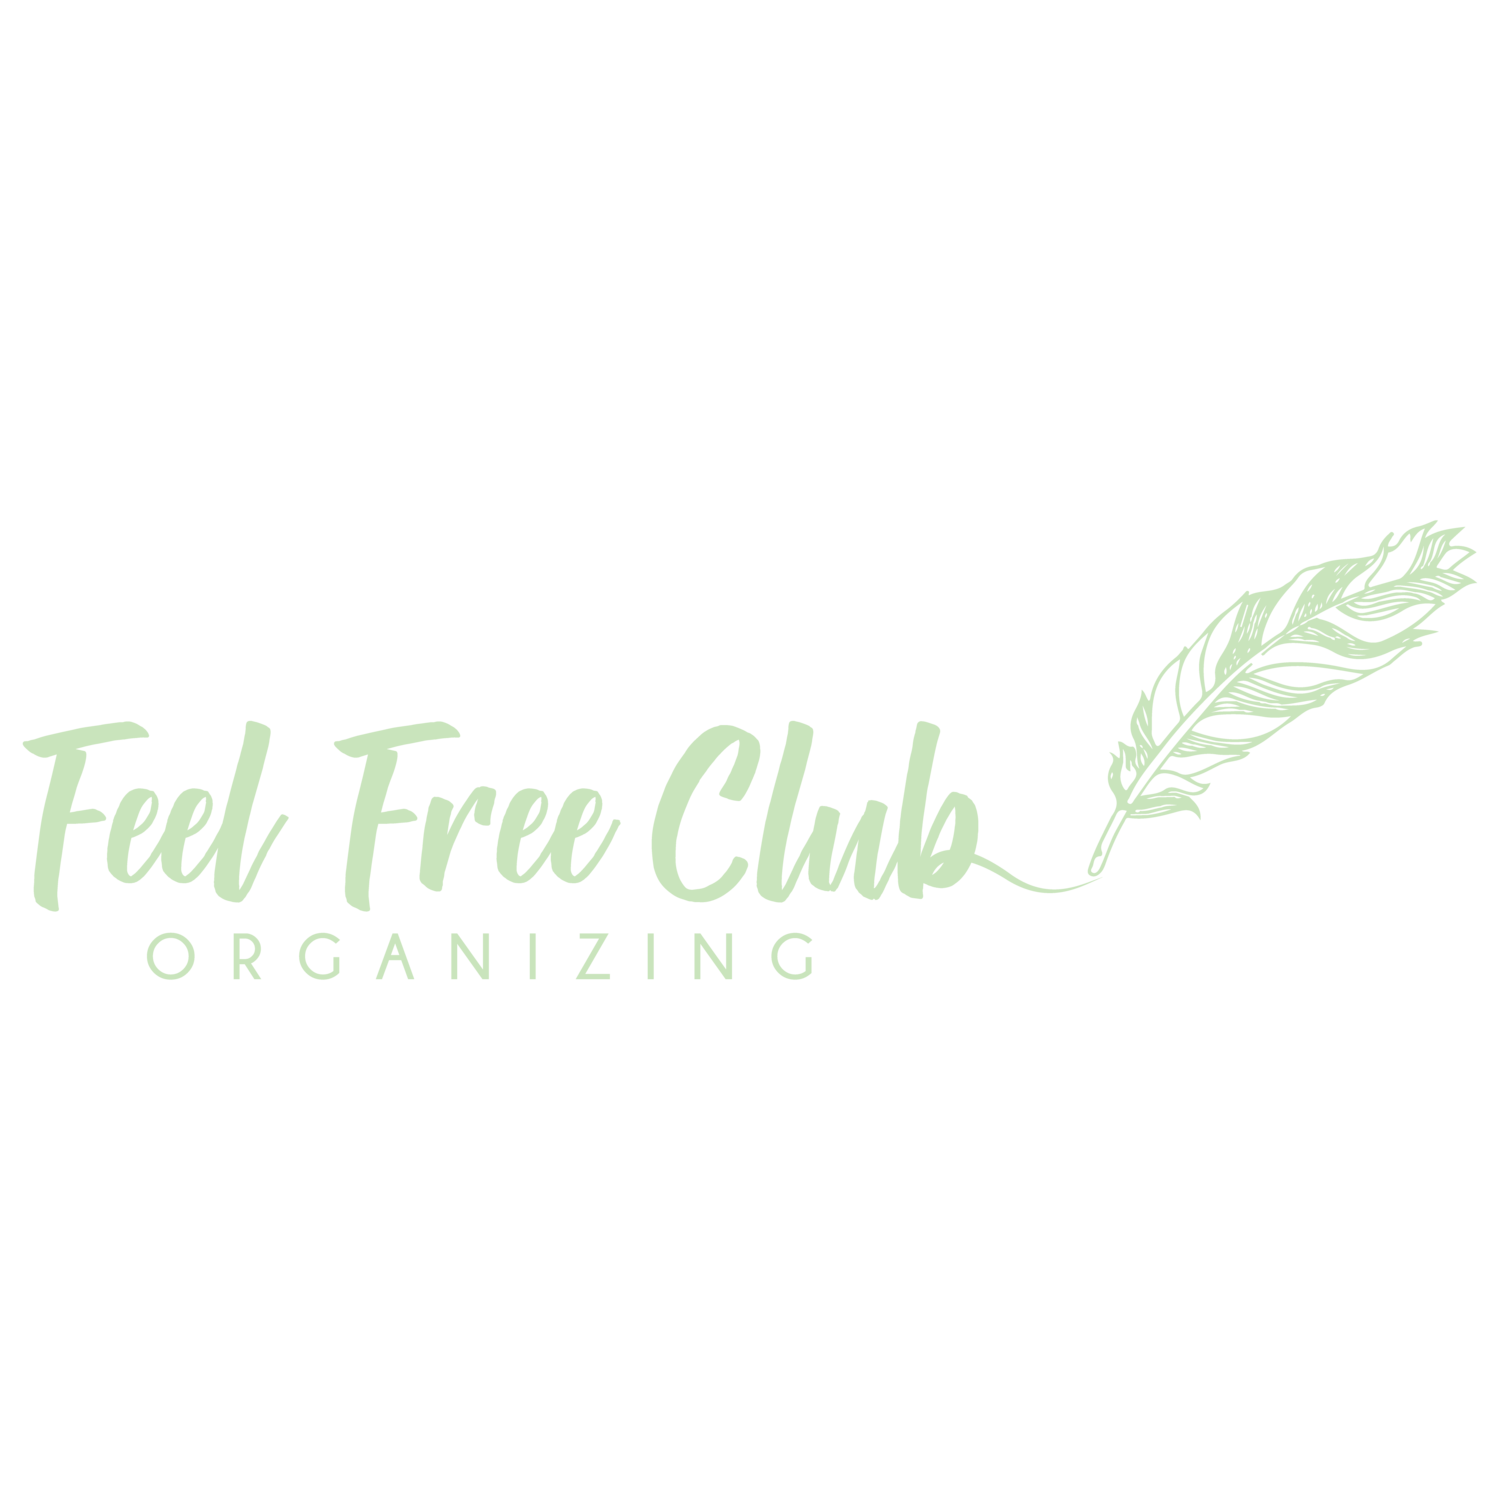 Feel Free Club Organizing